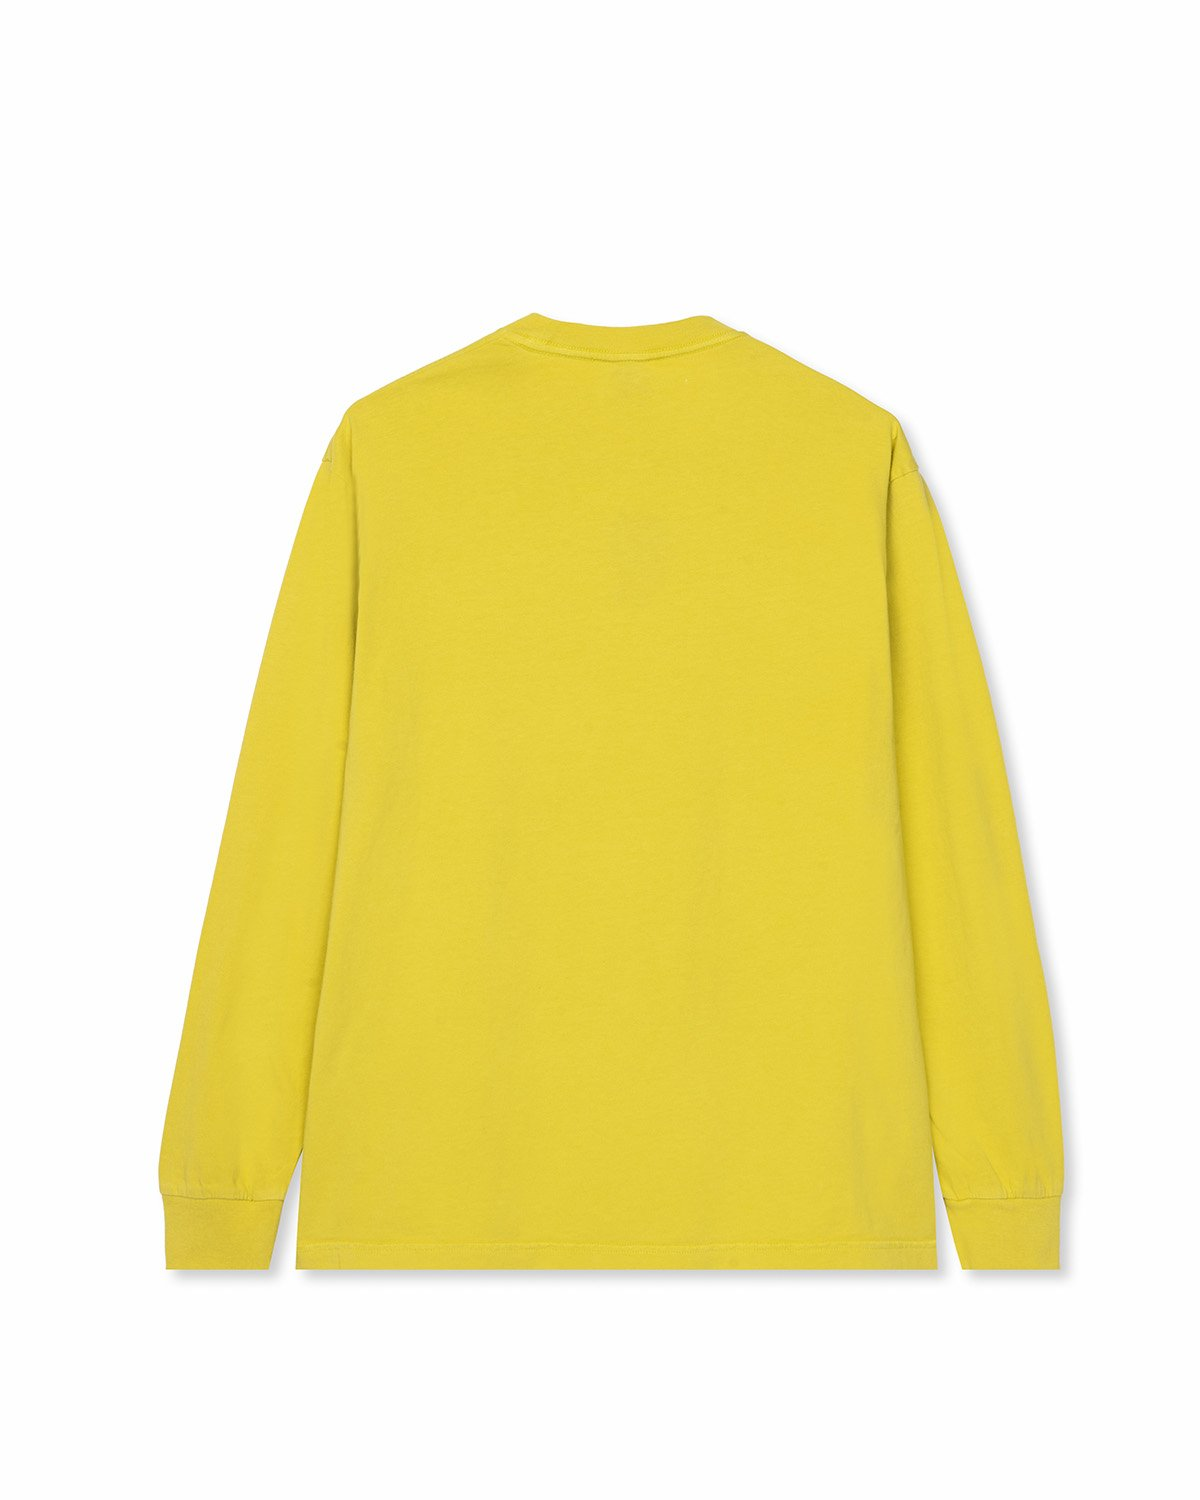 BRAINDEAD M'S T-SHIRTS CLEAN LOVE LONG SLEEVE SHIRT - YELLOW